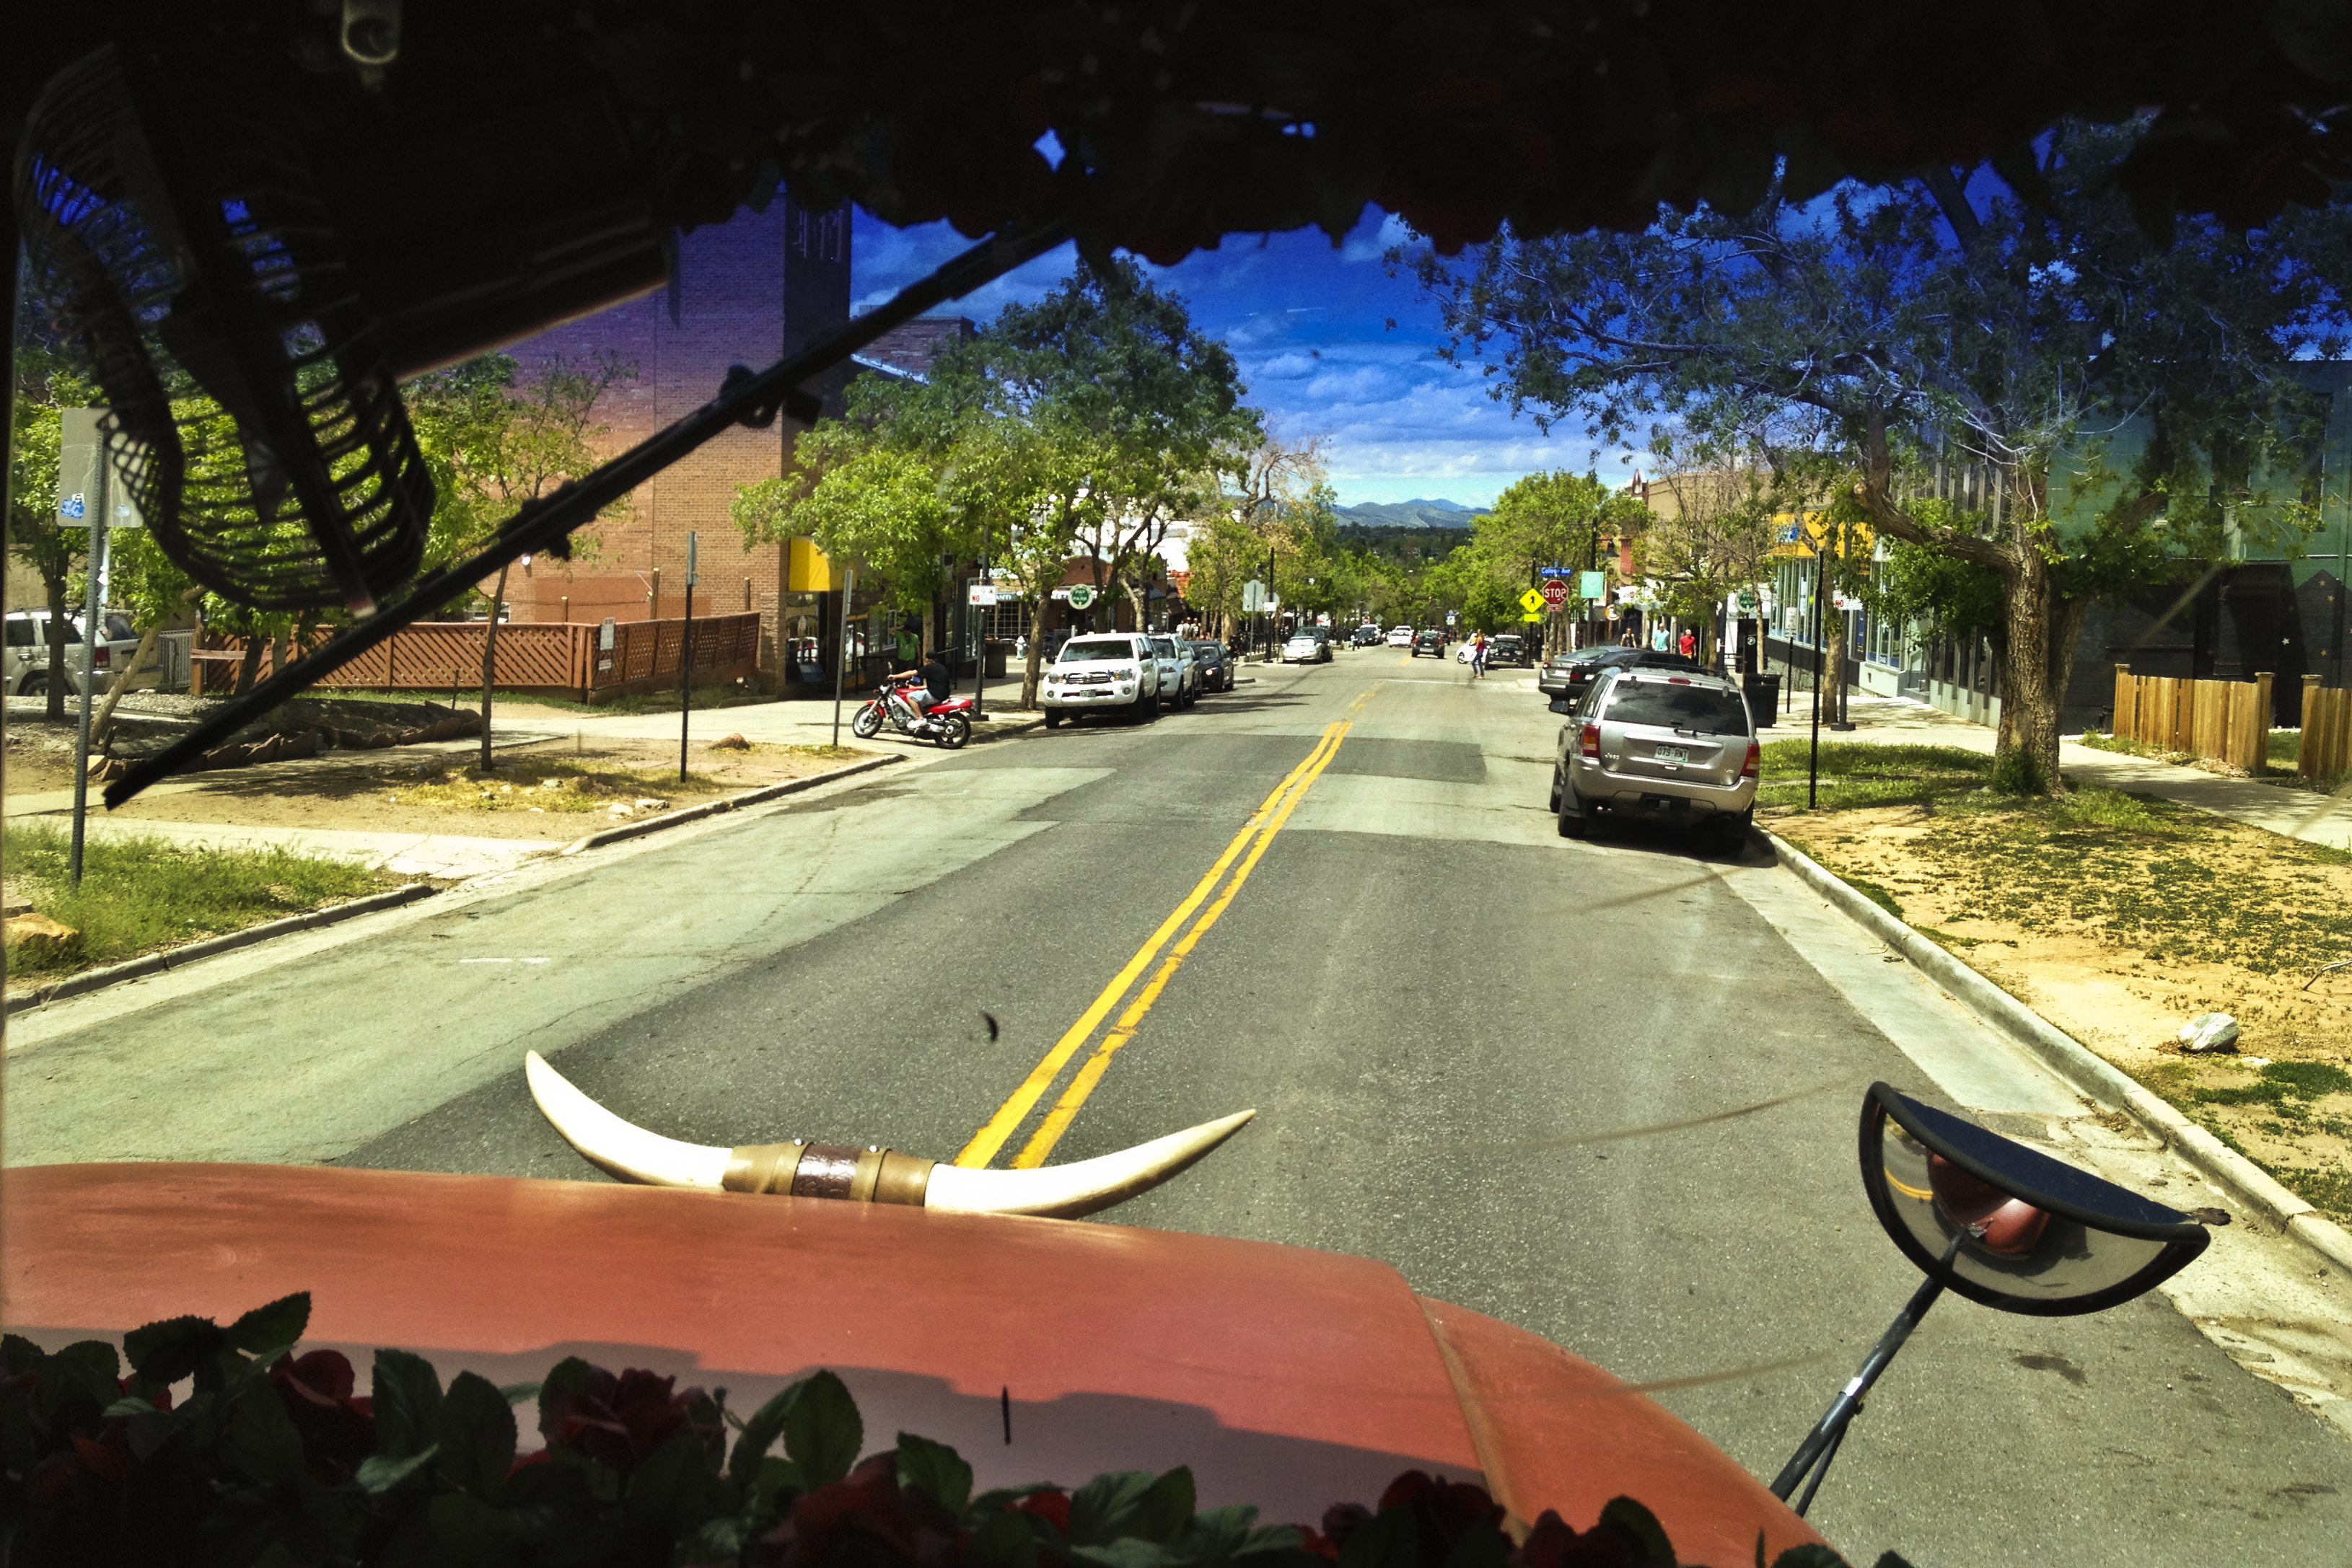 The Banjo Billy bus cruises along 13th Street on Boulder's University Hill. The brick building on the left is home to the historic Flatirons Theatre, which figures into one of Billy's more grisly tales.